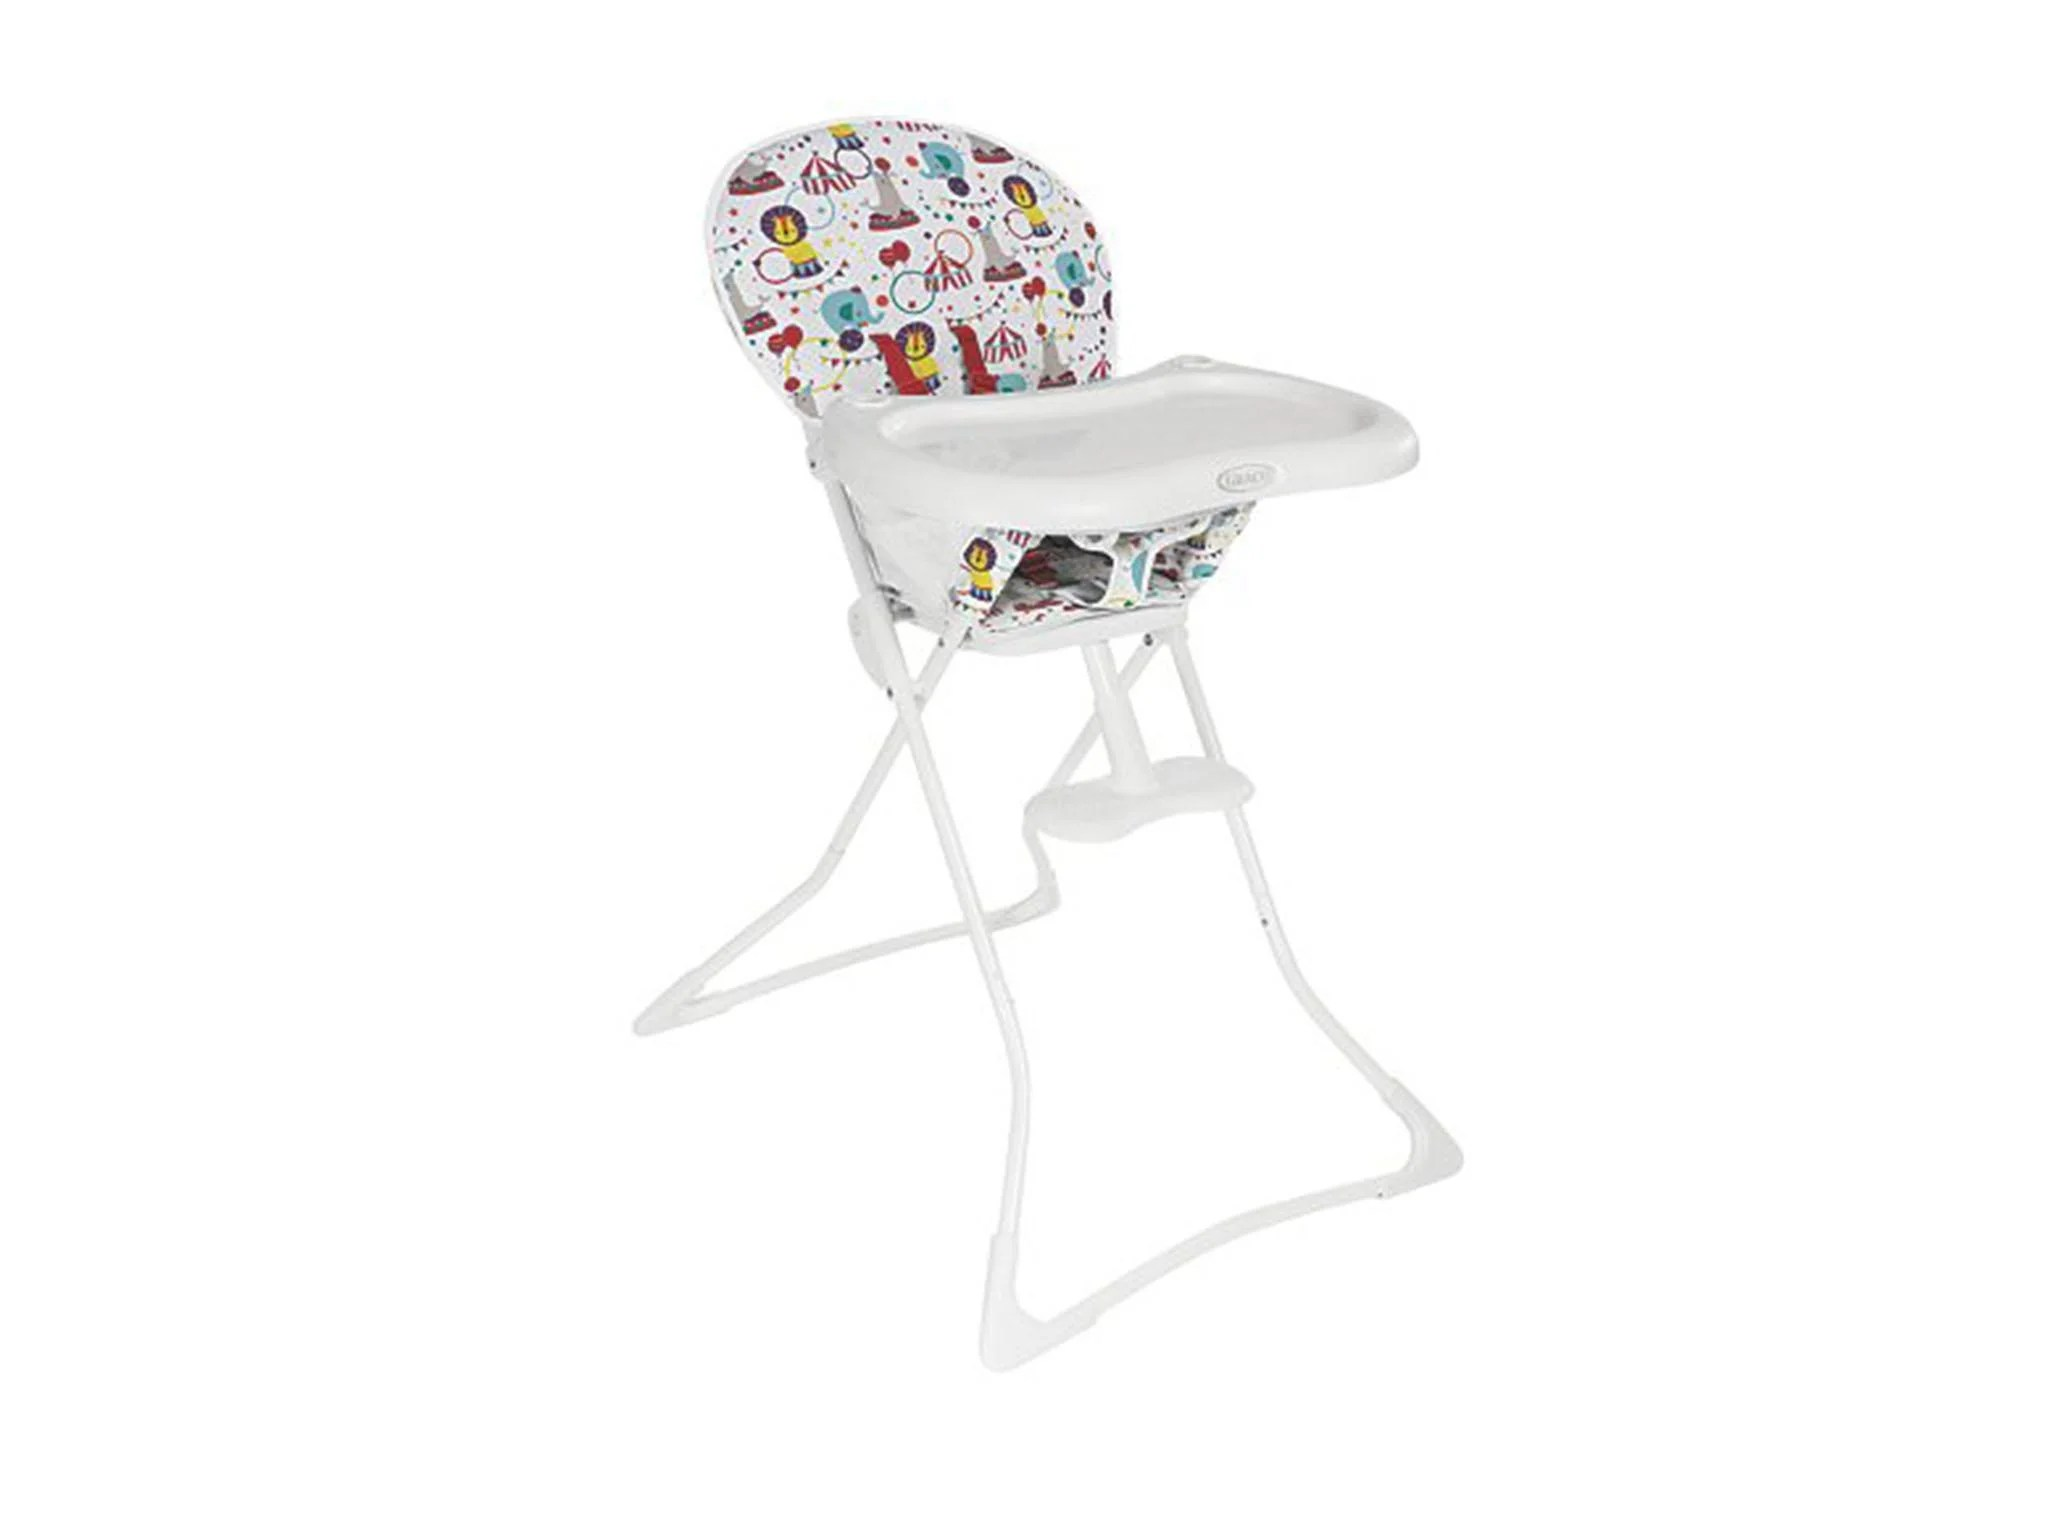 mima high chair australia living room covers walmart 12 best highchairs the independent graco tea time highchair 35 george at asda